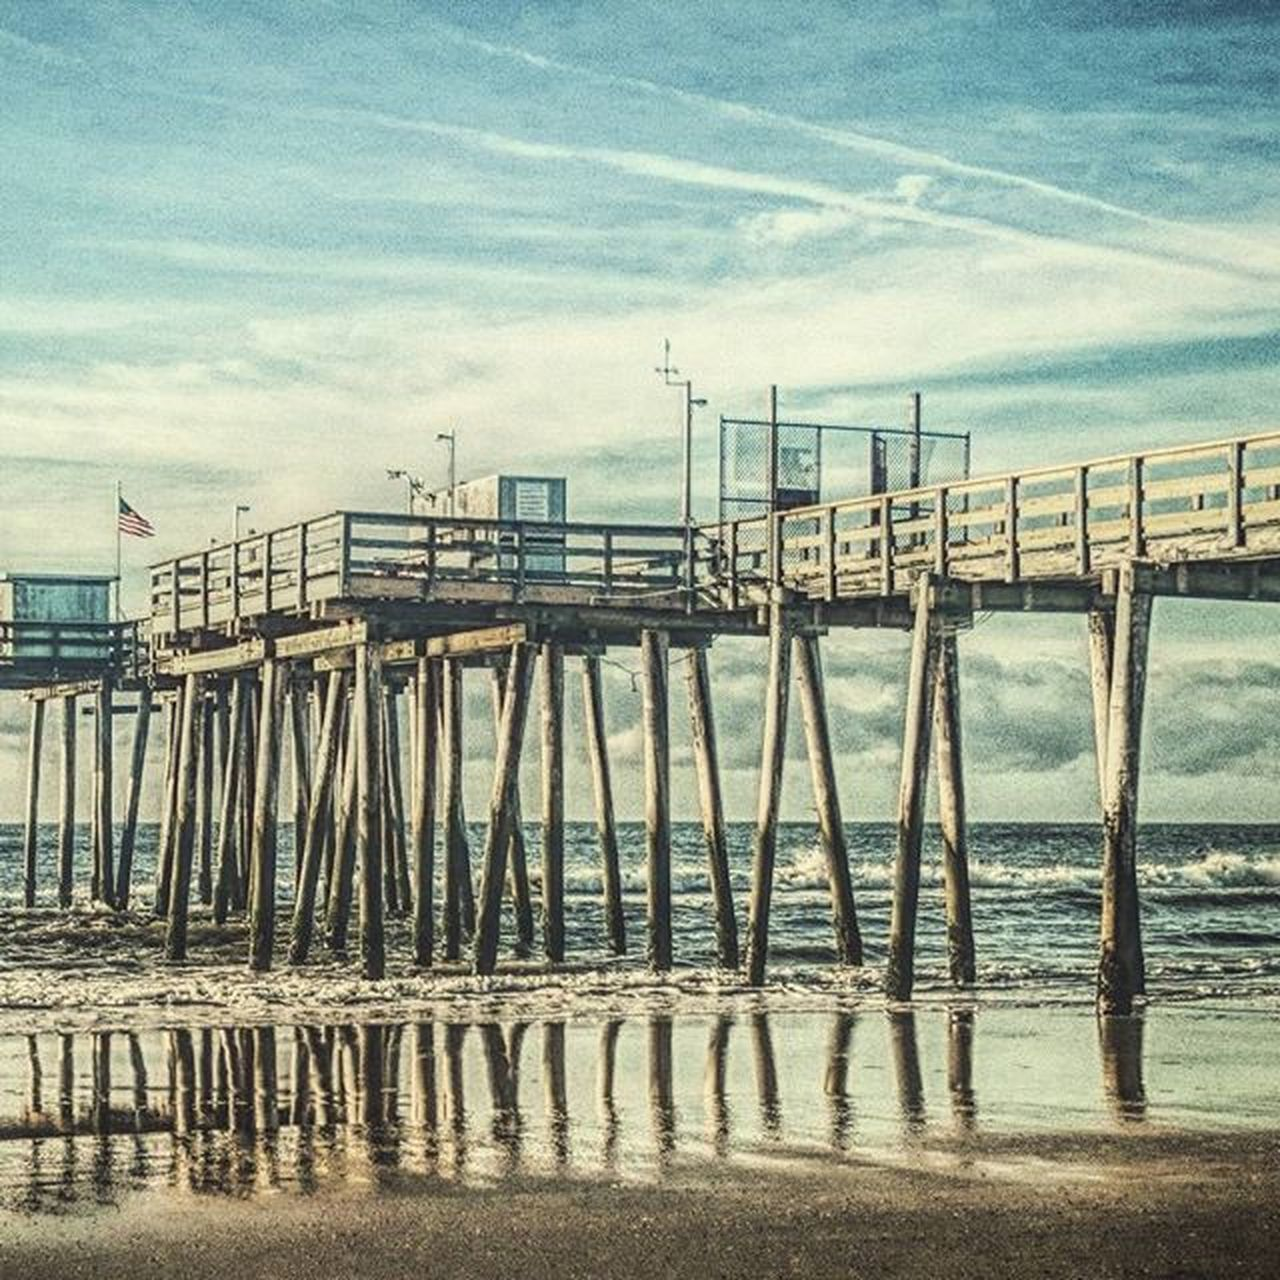 sky, sea, beach, water, sand, outdoors, day, built structure, nature, pier, no people, cloud - sky, architecture, horizon over water, scenics, beauty in nature